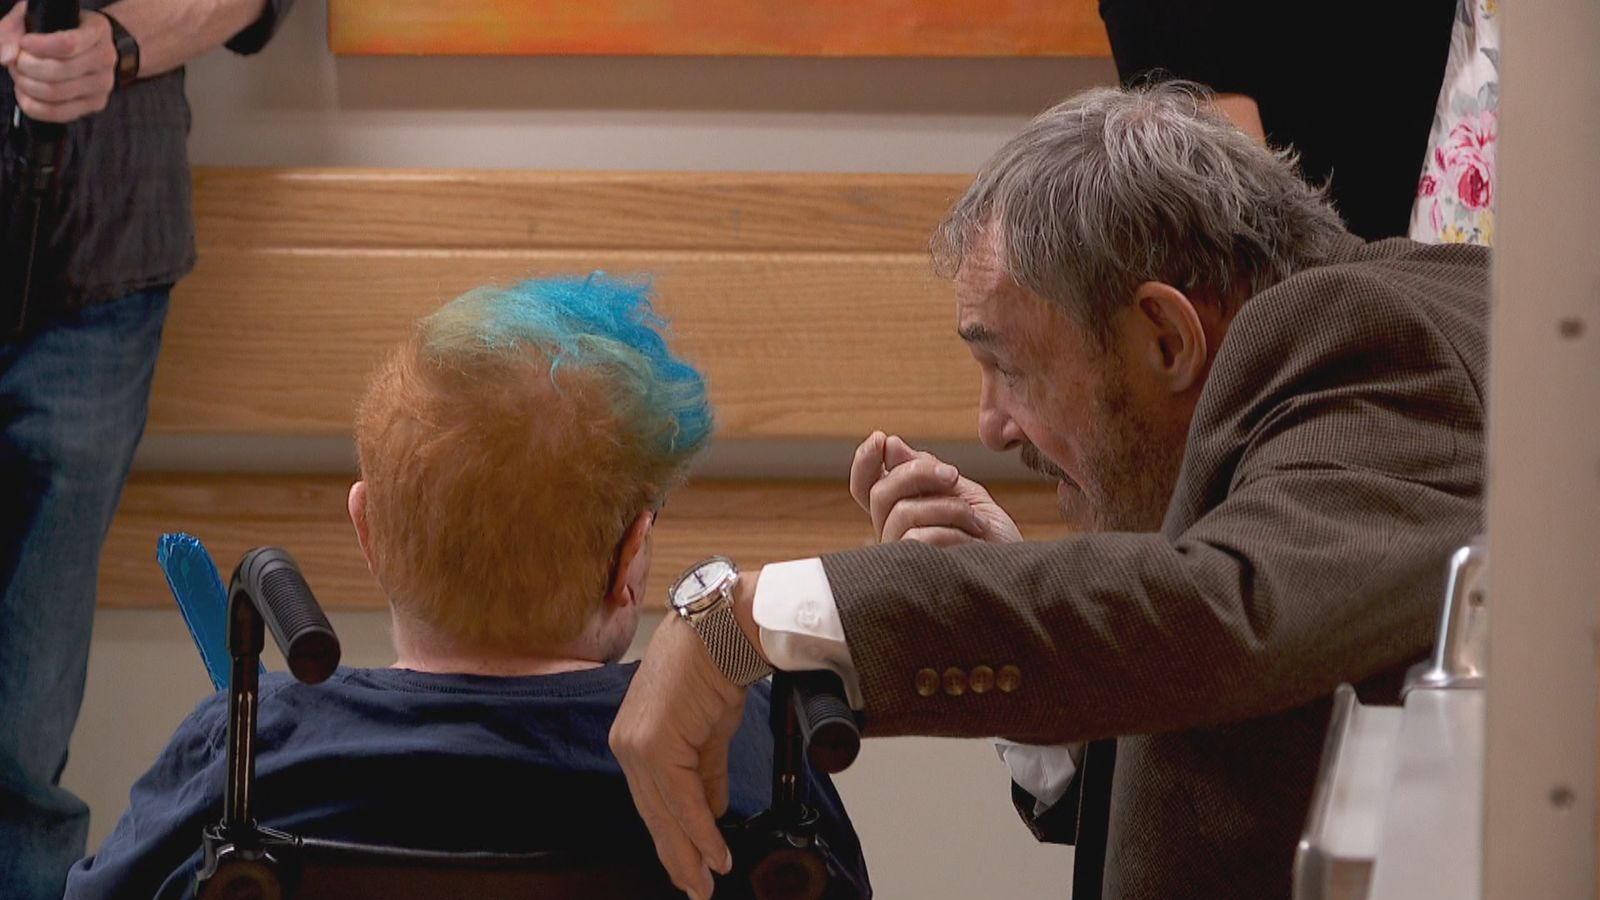 Actor{ }John Rhys-Davies of Lord of the Rings and Indiana Jones fame chats with a patient{ } at Primary Children's Hospital in Salt Lake City, Utah on September 5. 2019. (Photo: KUTV)